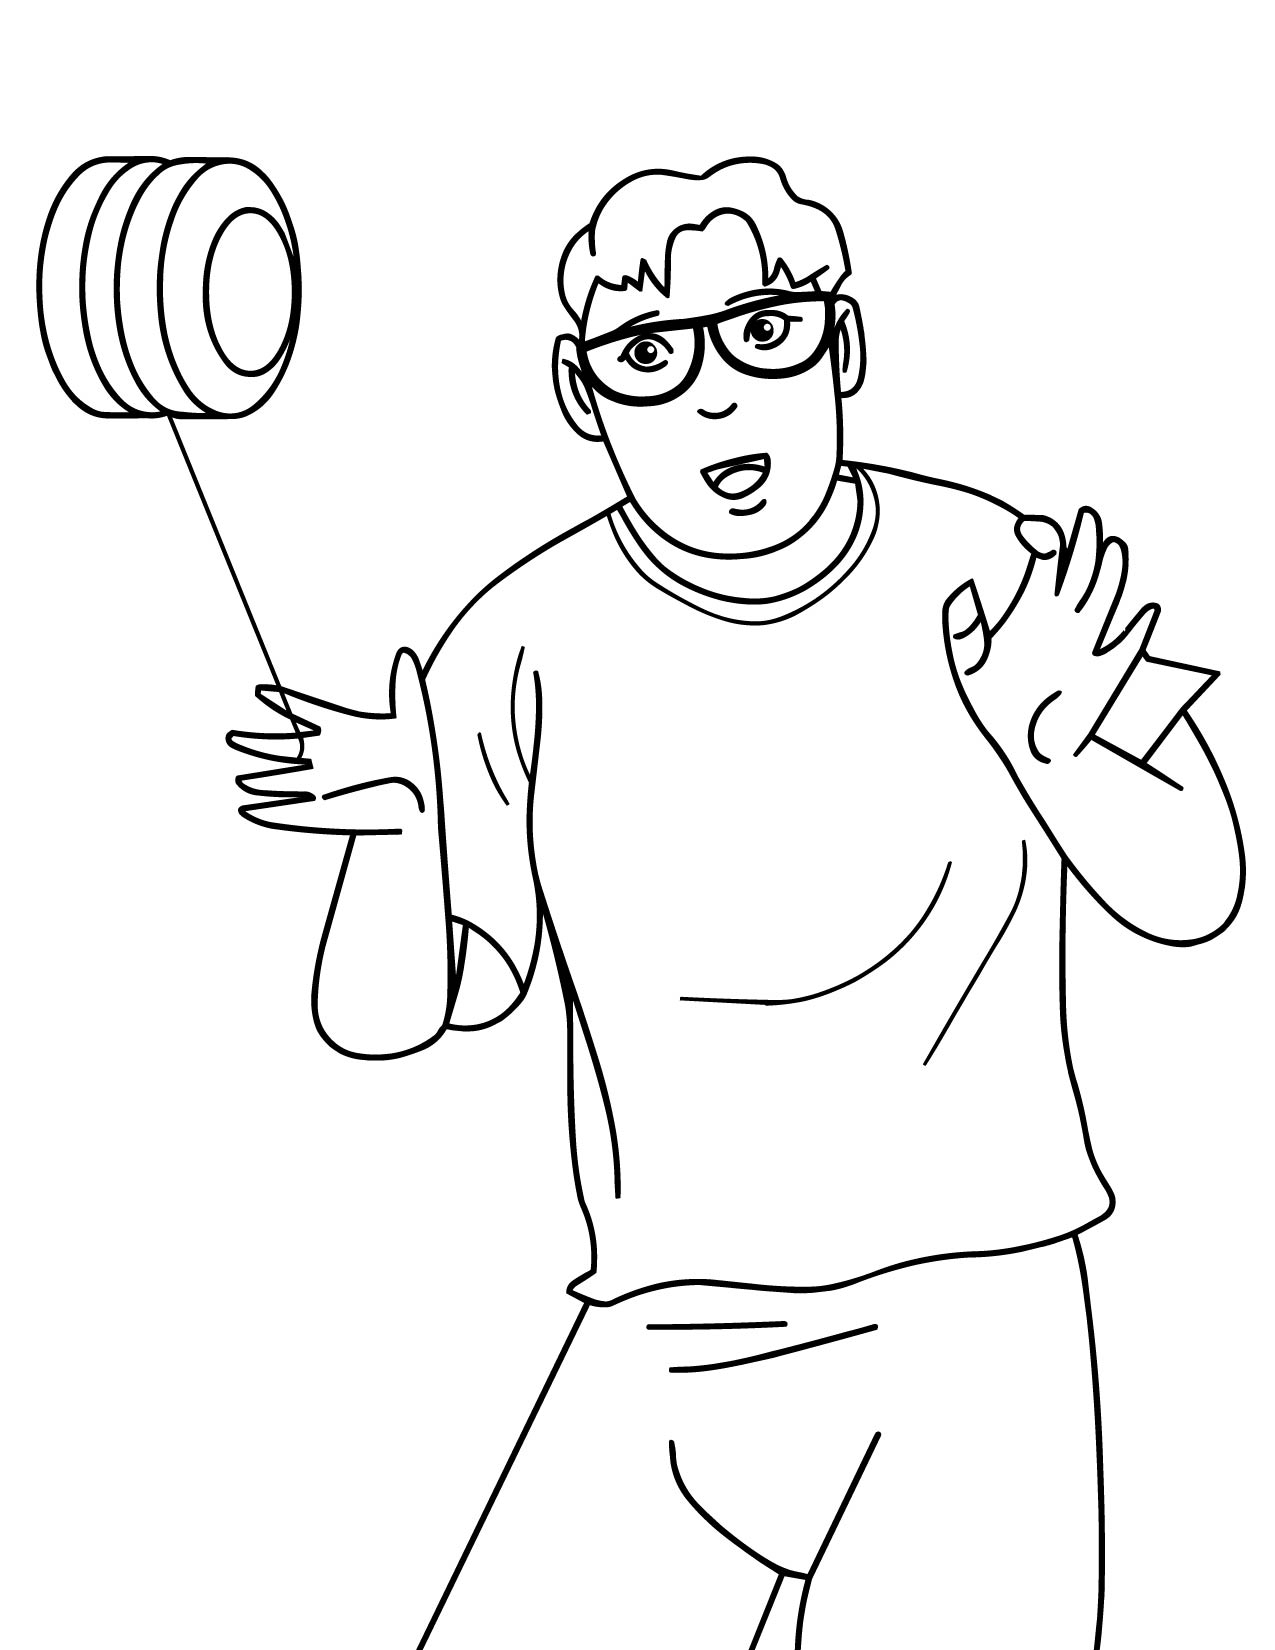 coloring picture of yoyo dibujos de yoyos faciles heartfeltblurbsblogspotcom yoyo of picture coloring